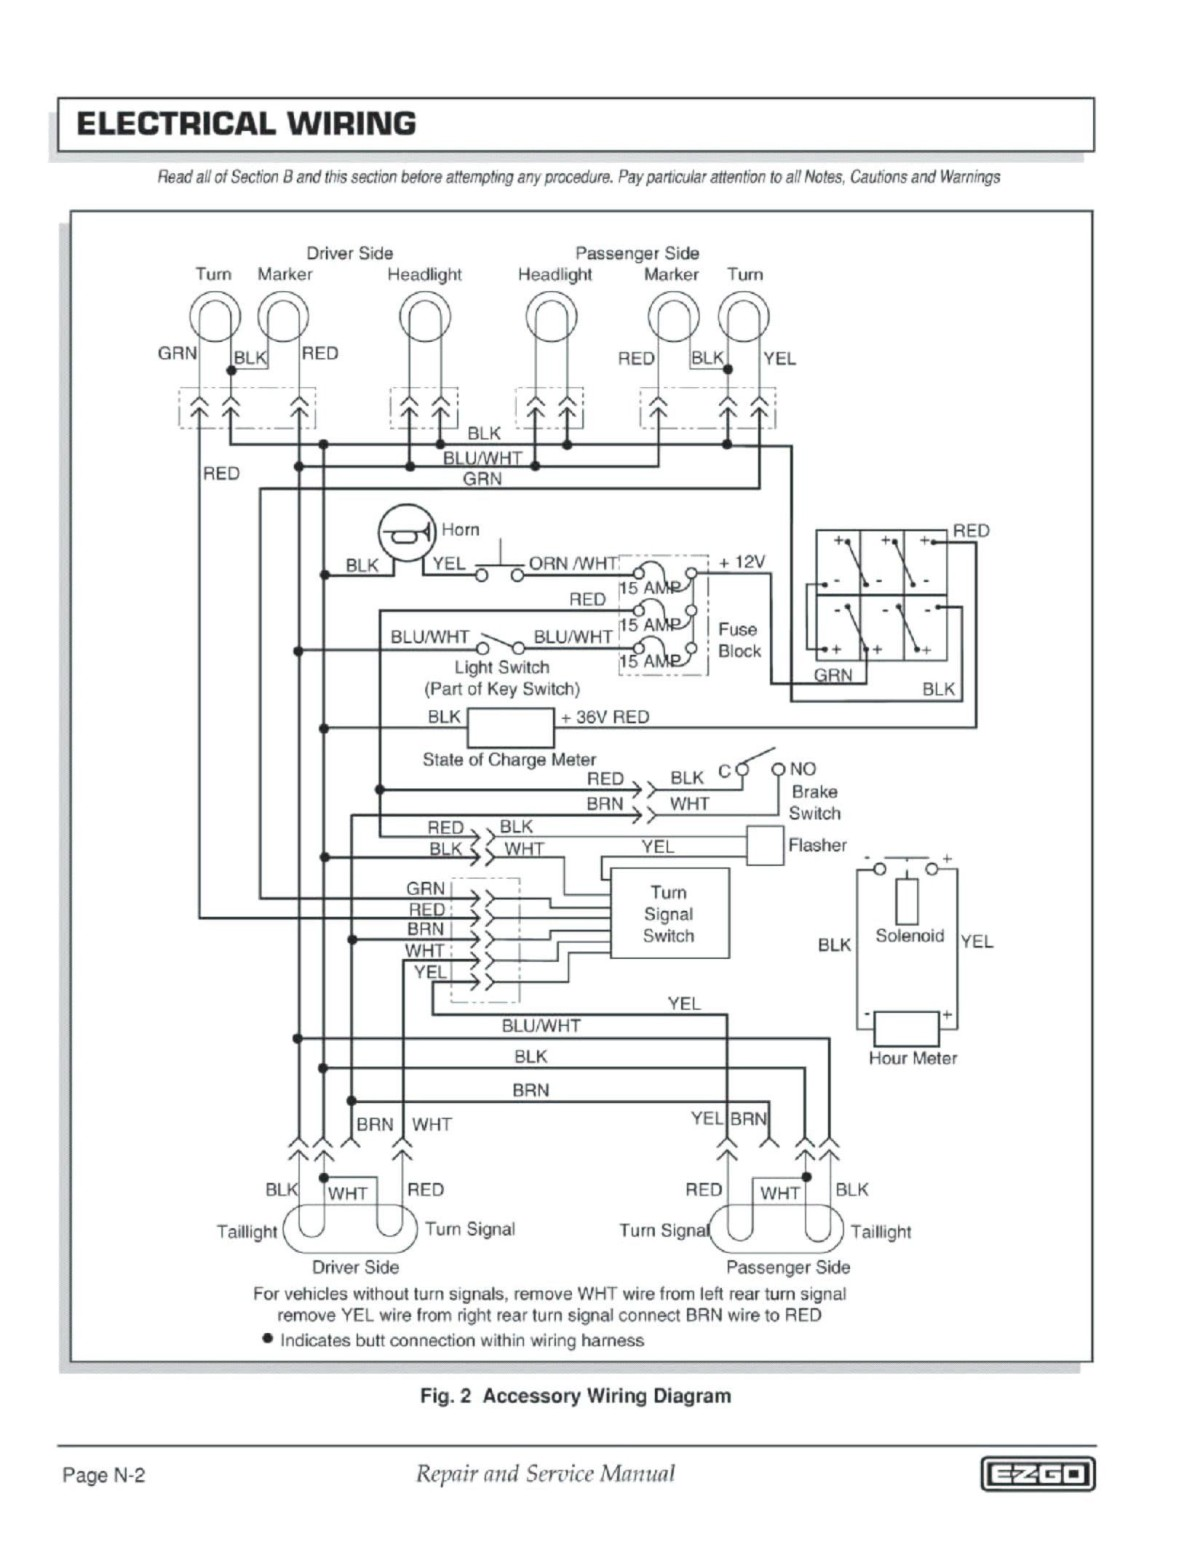 Wiring Diagram Book Pdf